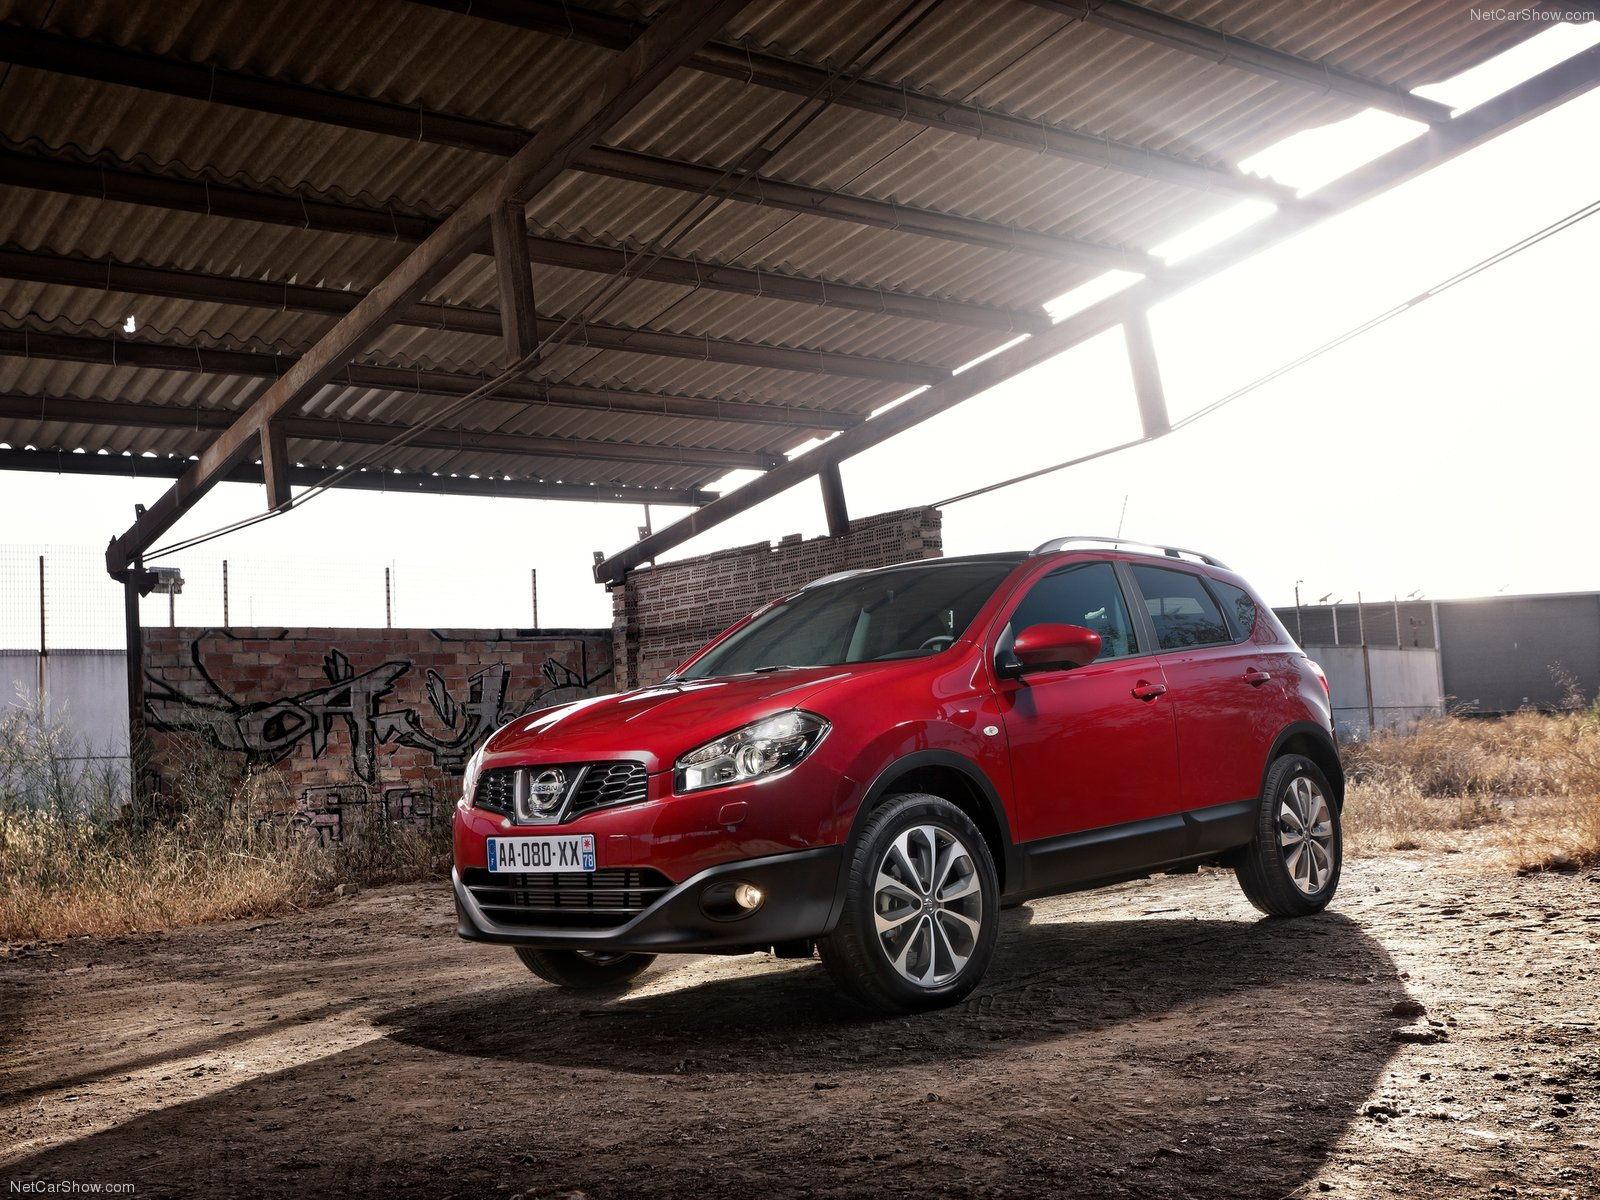 2012 nissan qashqai pictures information and specs. Black Bedroom Furniture Sets. Home Design Ideas